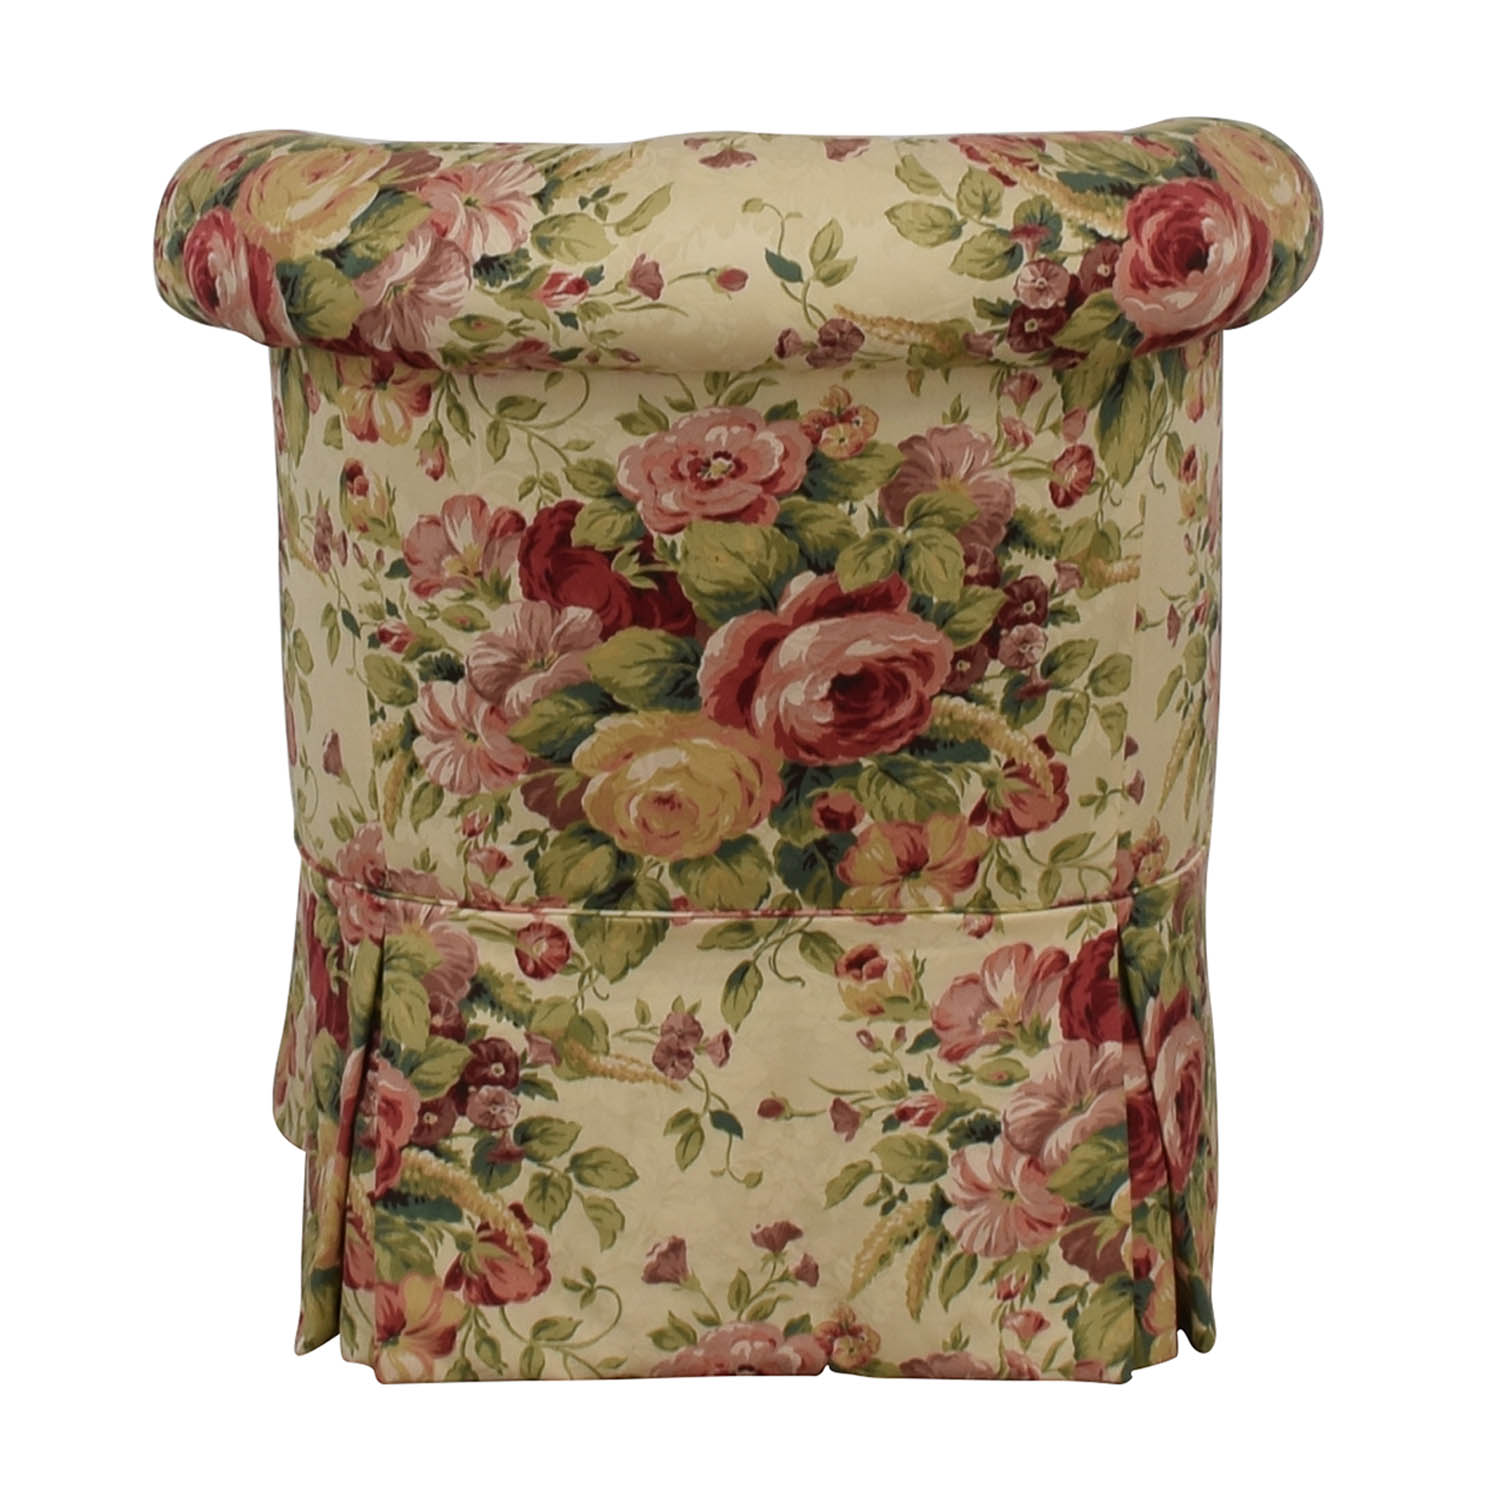 Furniture Masters Furniture Masters Floral Accent Chair used